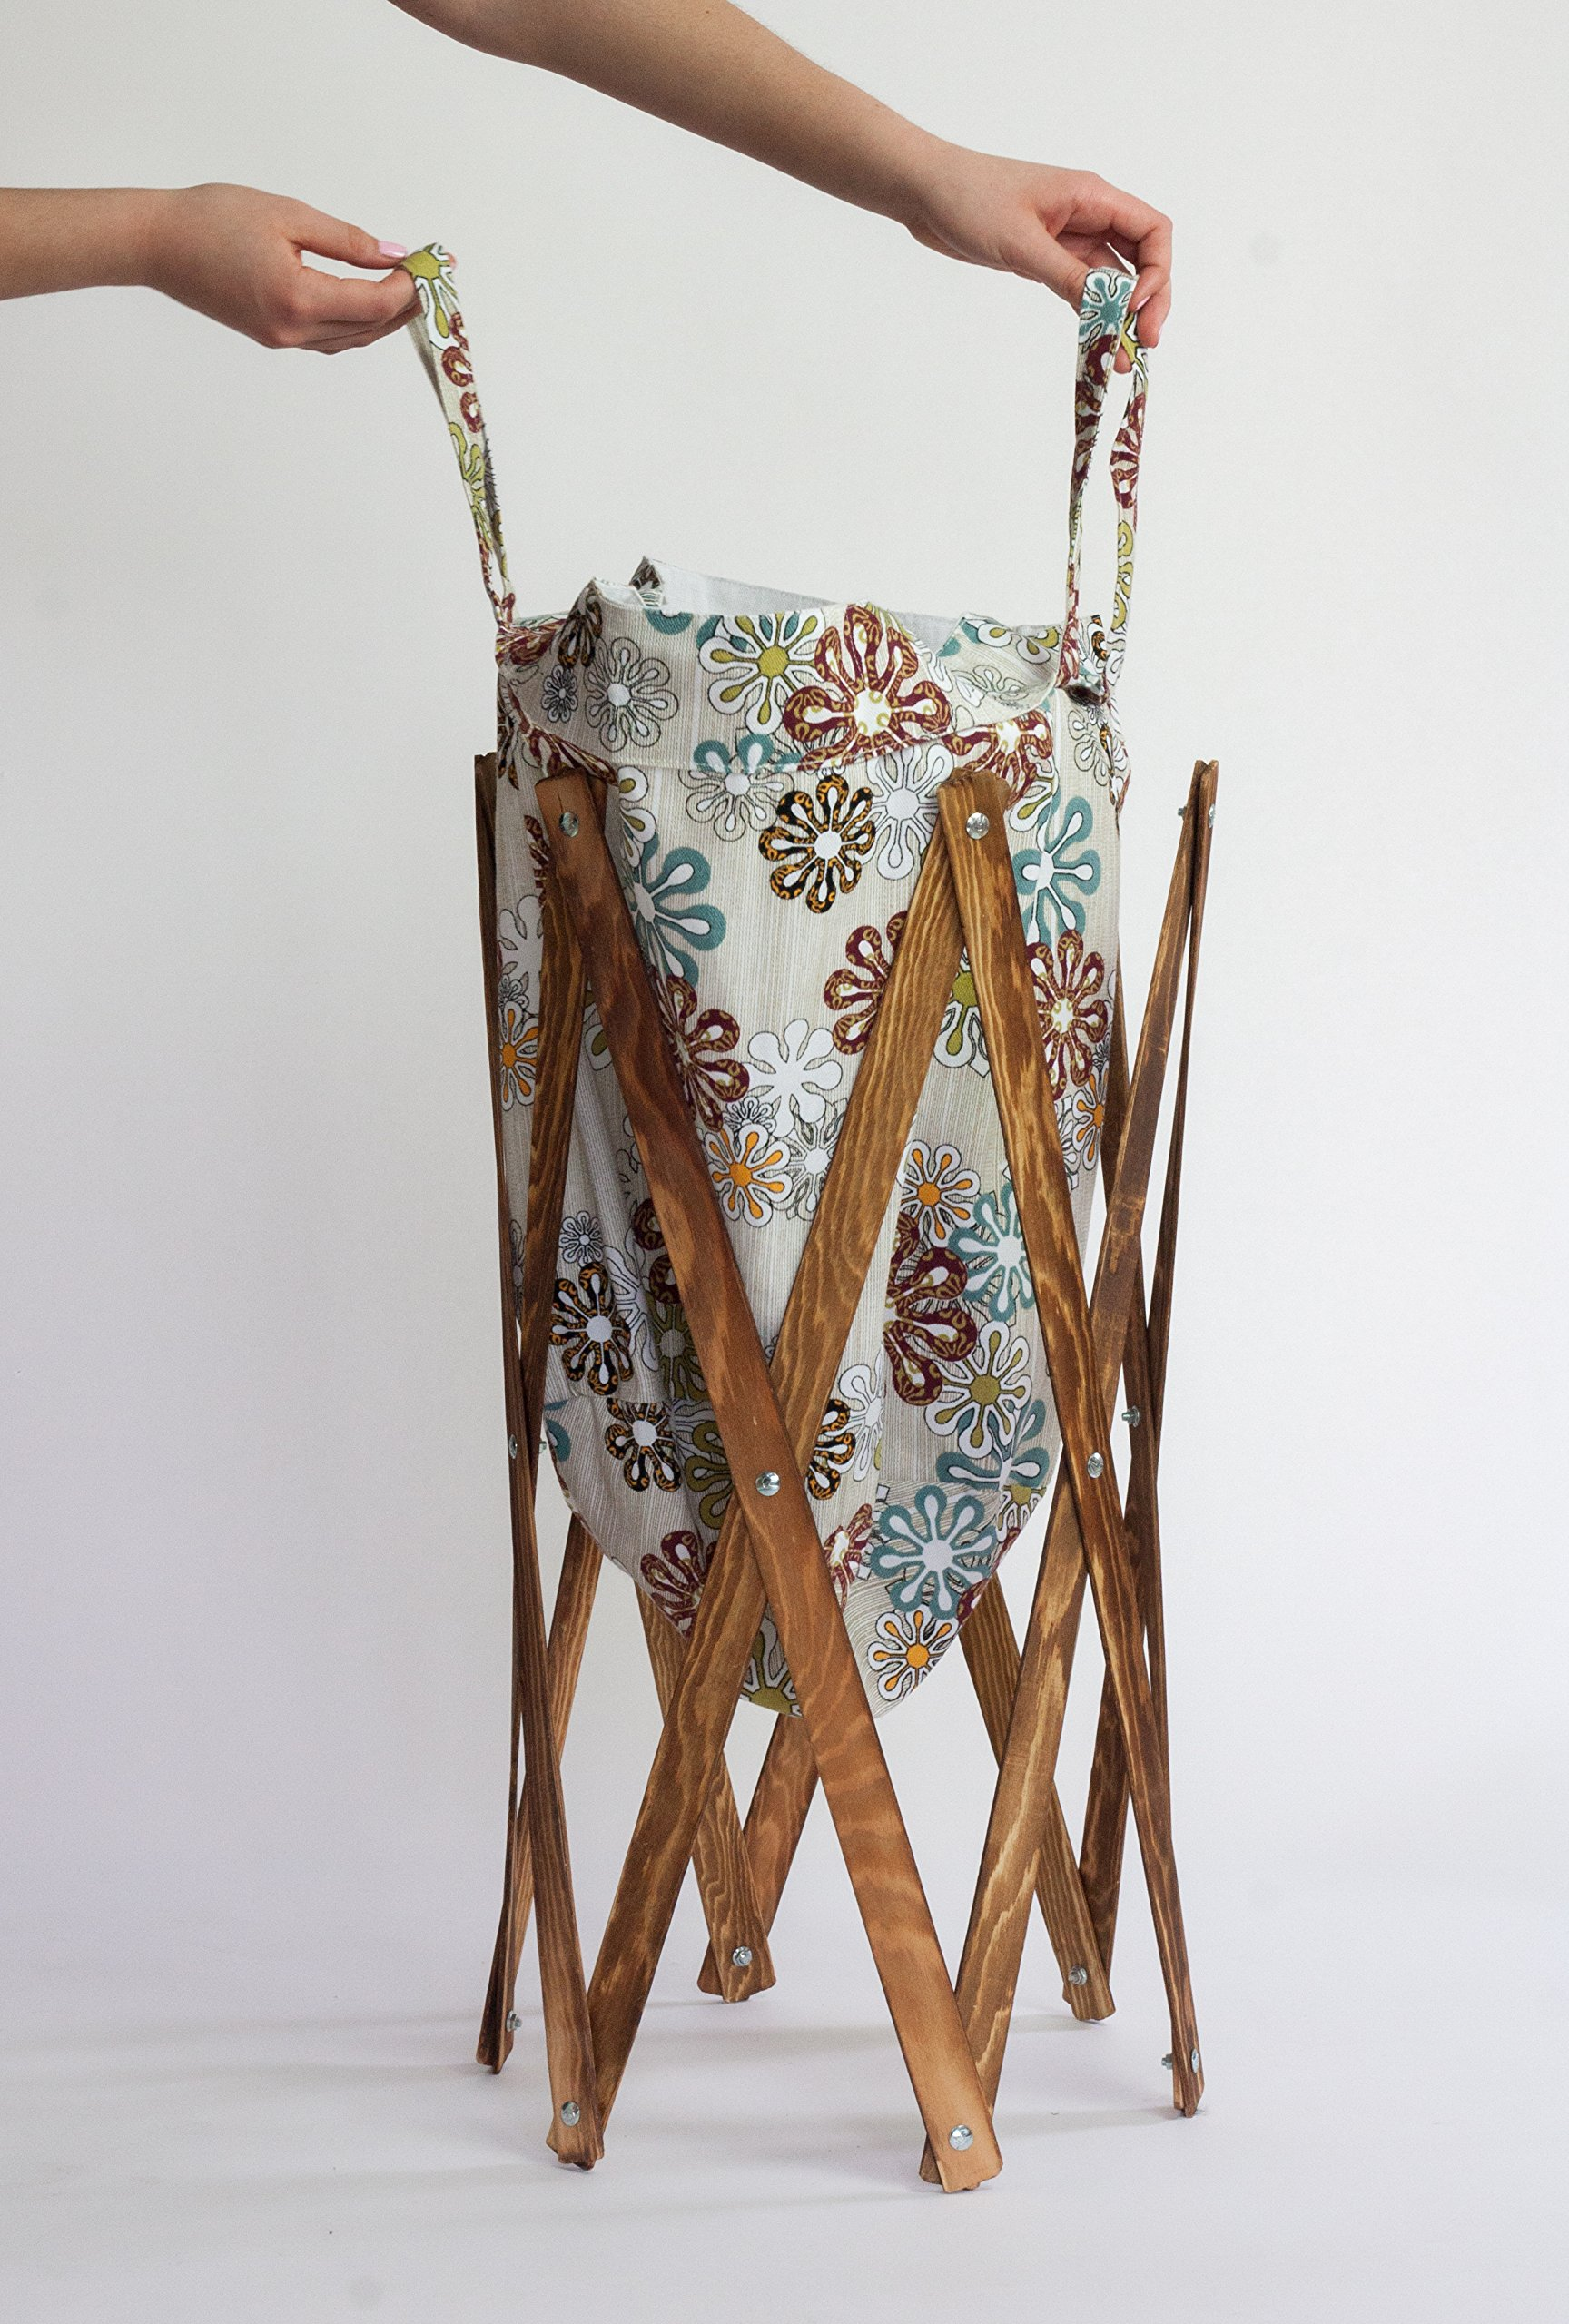 MAX + RAE Collapsible Laundry Hamper with Stained Wood Frame | Dirty Clothes Storage | Removable Fabric Bag with Handles, Easy to Carry and Clean | Nursery, Kids Bedroom, Bathroom (Flower Art 2) by MAX + RAE (Image #6)